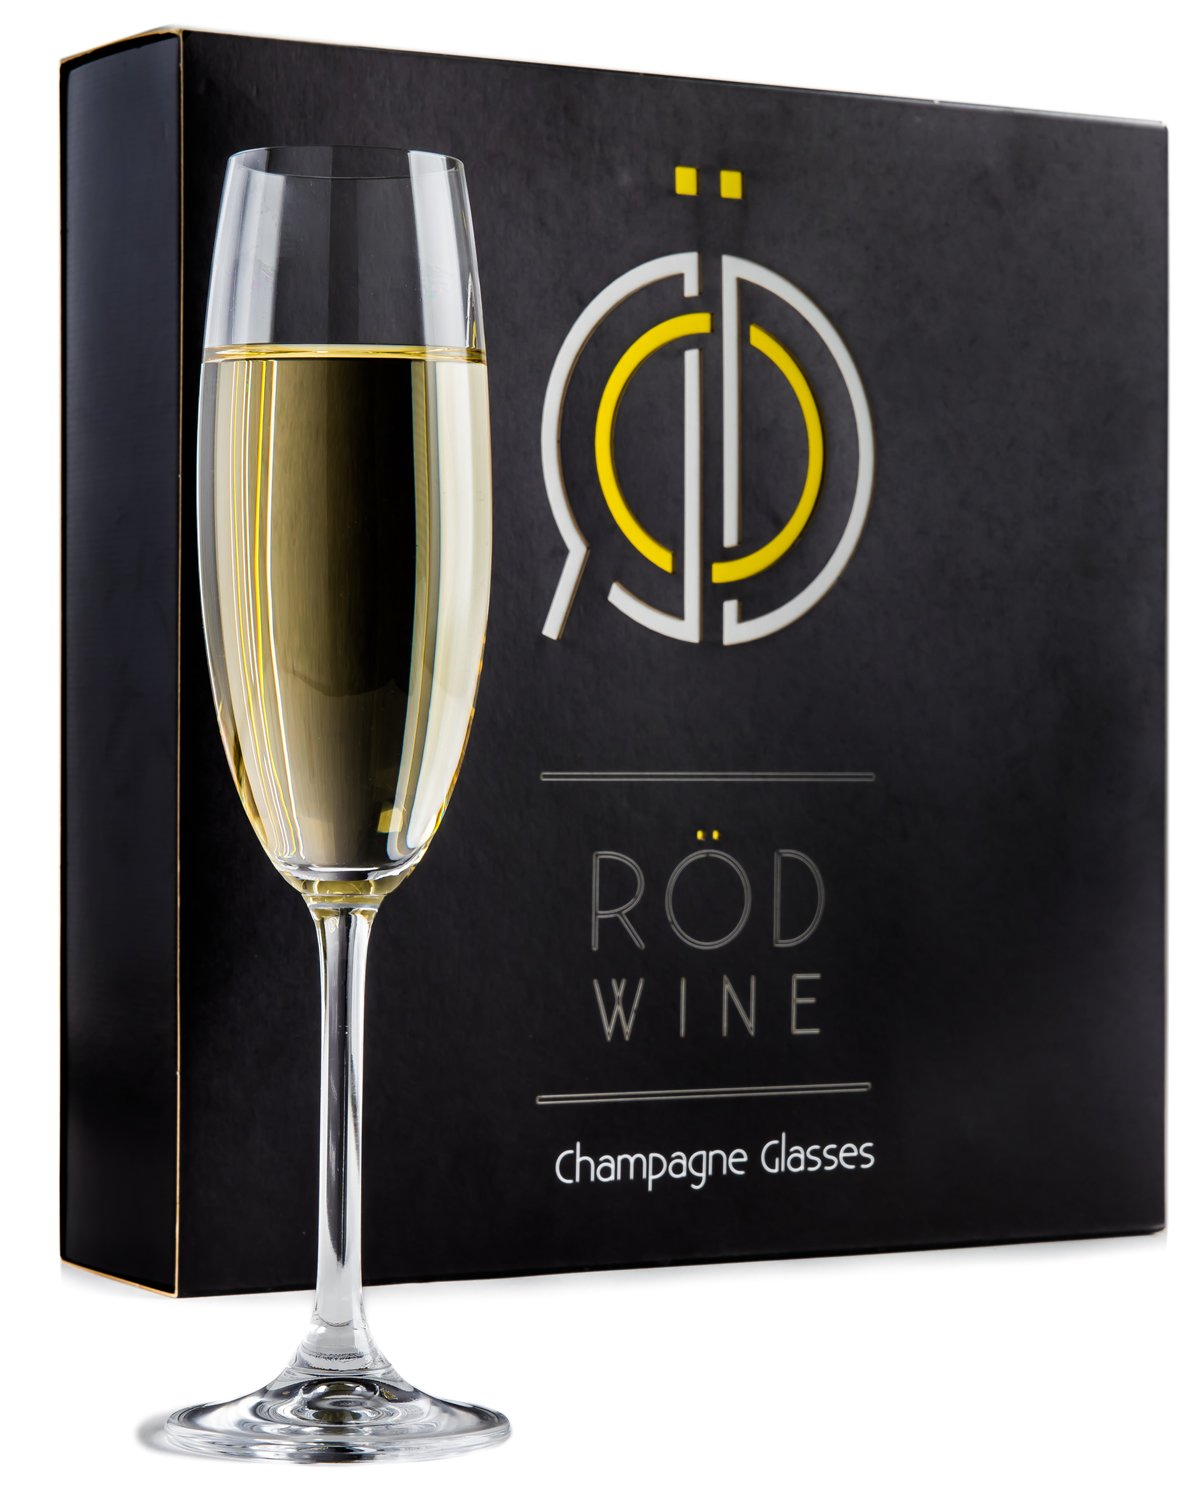 Champagne Flutes Prosecco Glasses Crystal Gift Sets - Lead-Free, Titanium Sparkling Wine Glass 220 ml with Premium Storage Box - Best Glassware for Gifts, Weddings, Parties - Set of 3 RÖD Wine FBA_rodwinechamp